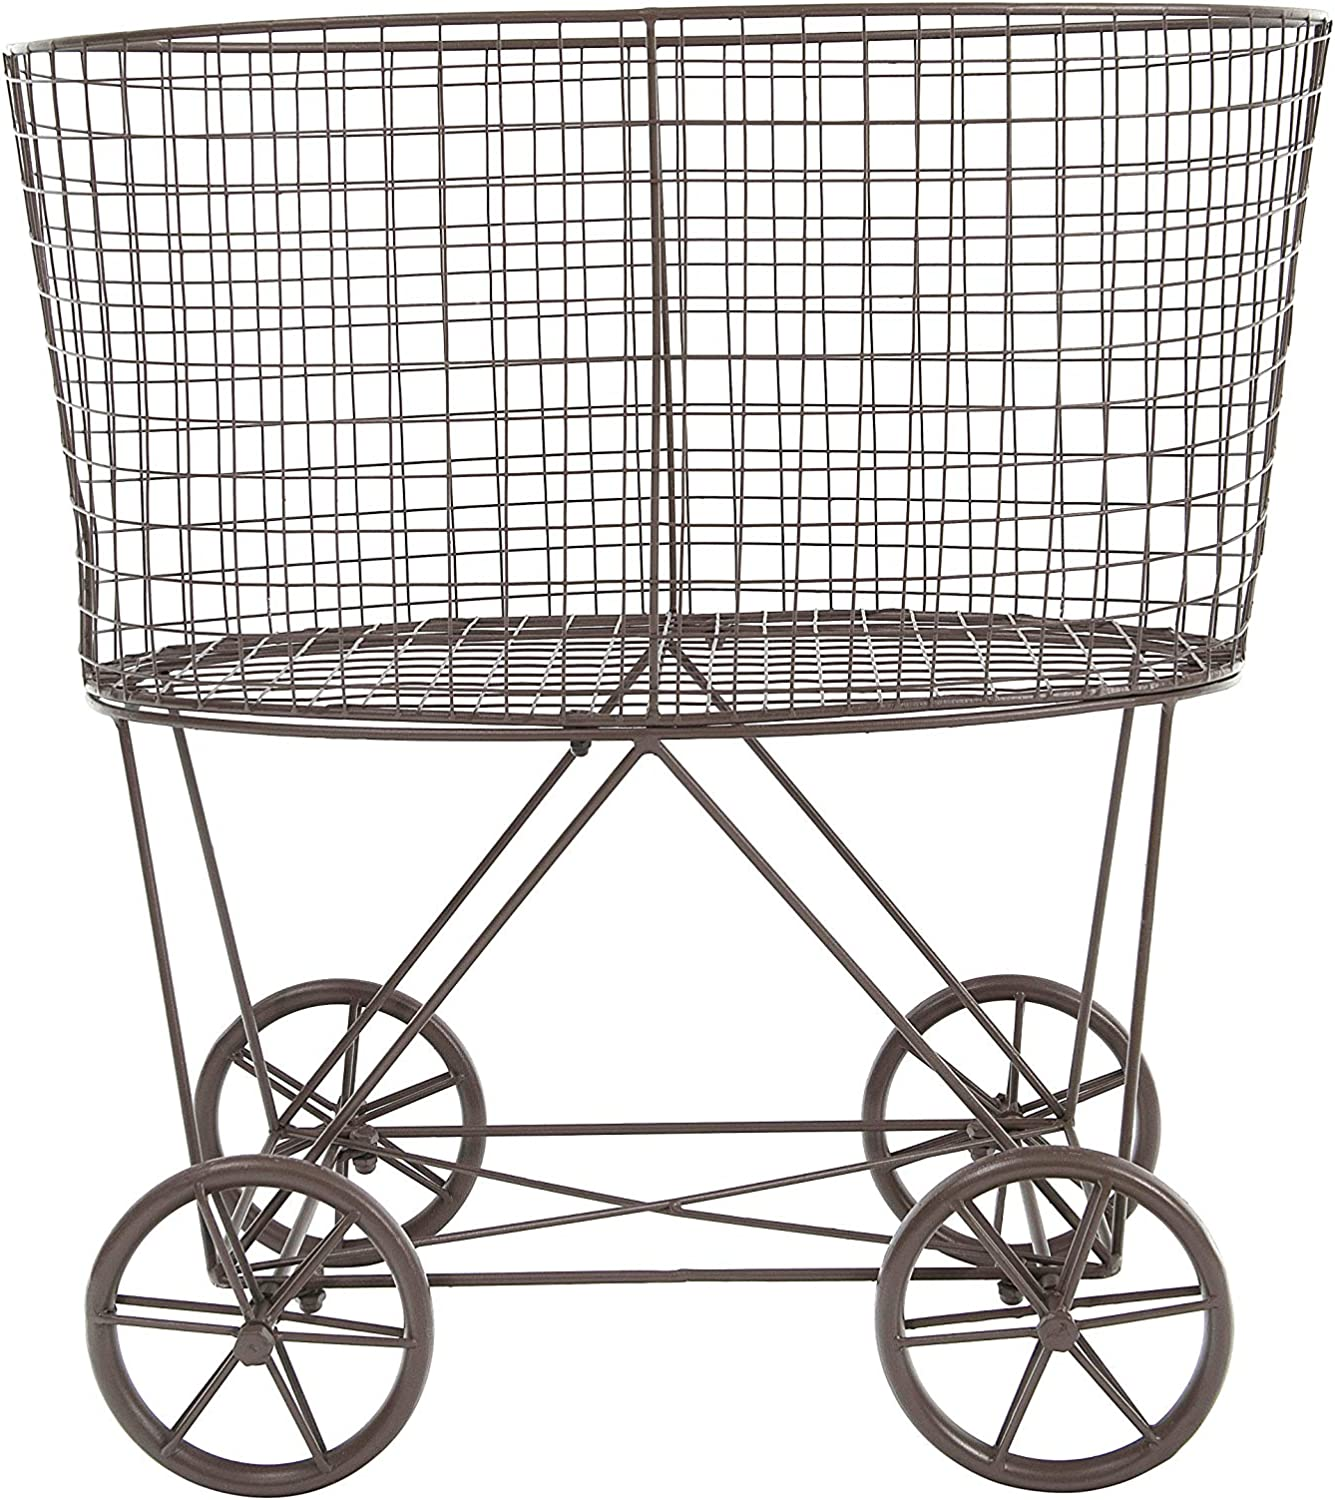 Creative Co-op Vintage Metal Laundry Basket with Wheels, Brown